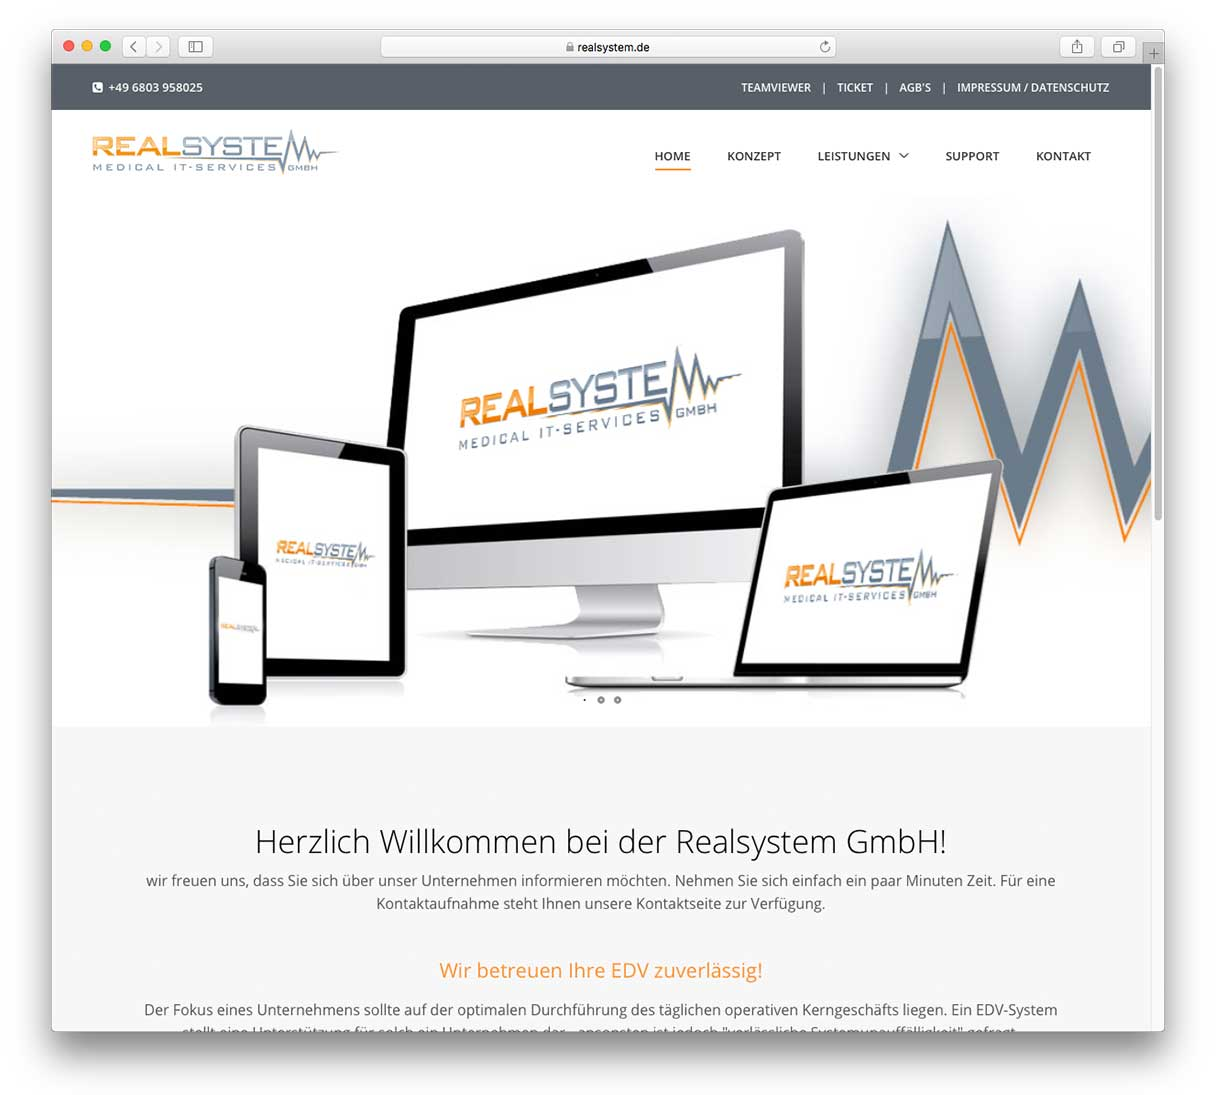 RealSystem GmbH - Medical IT-Services